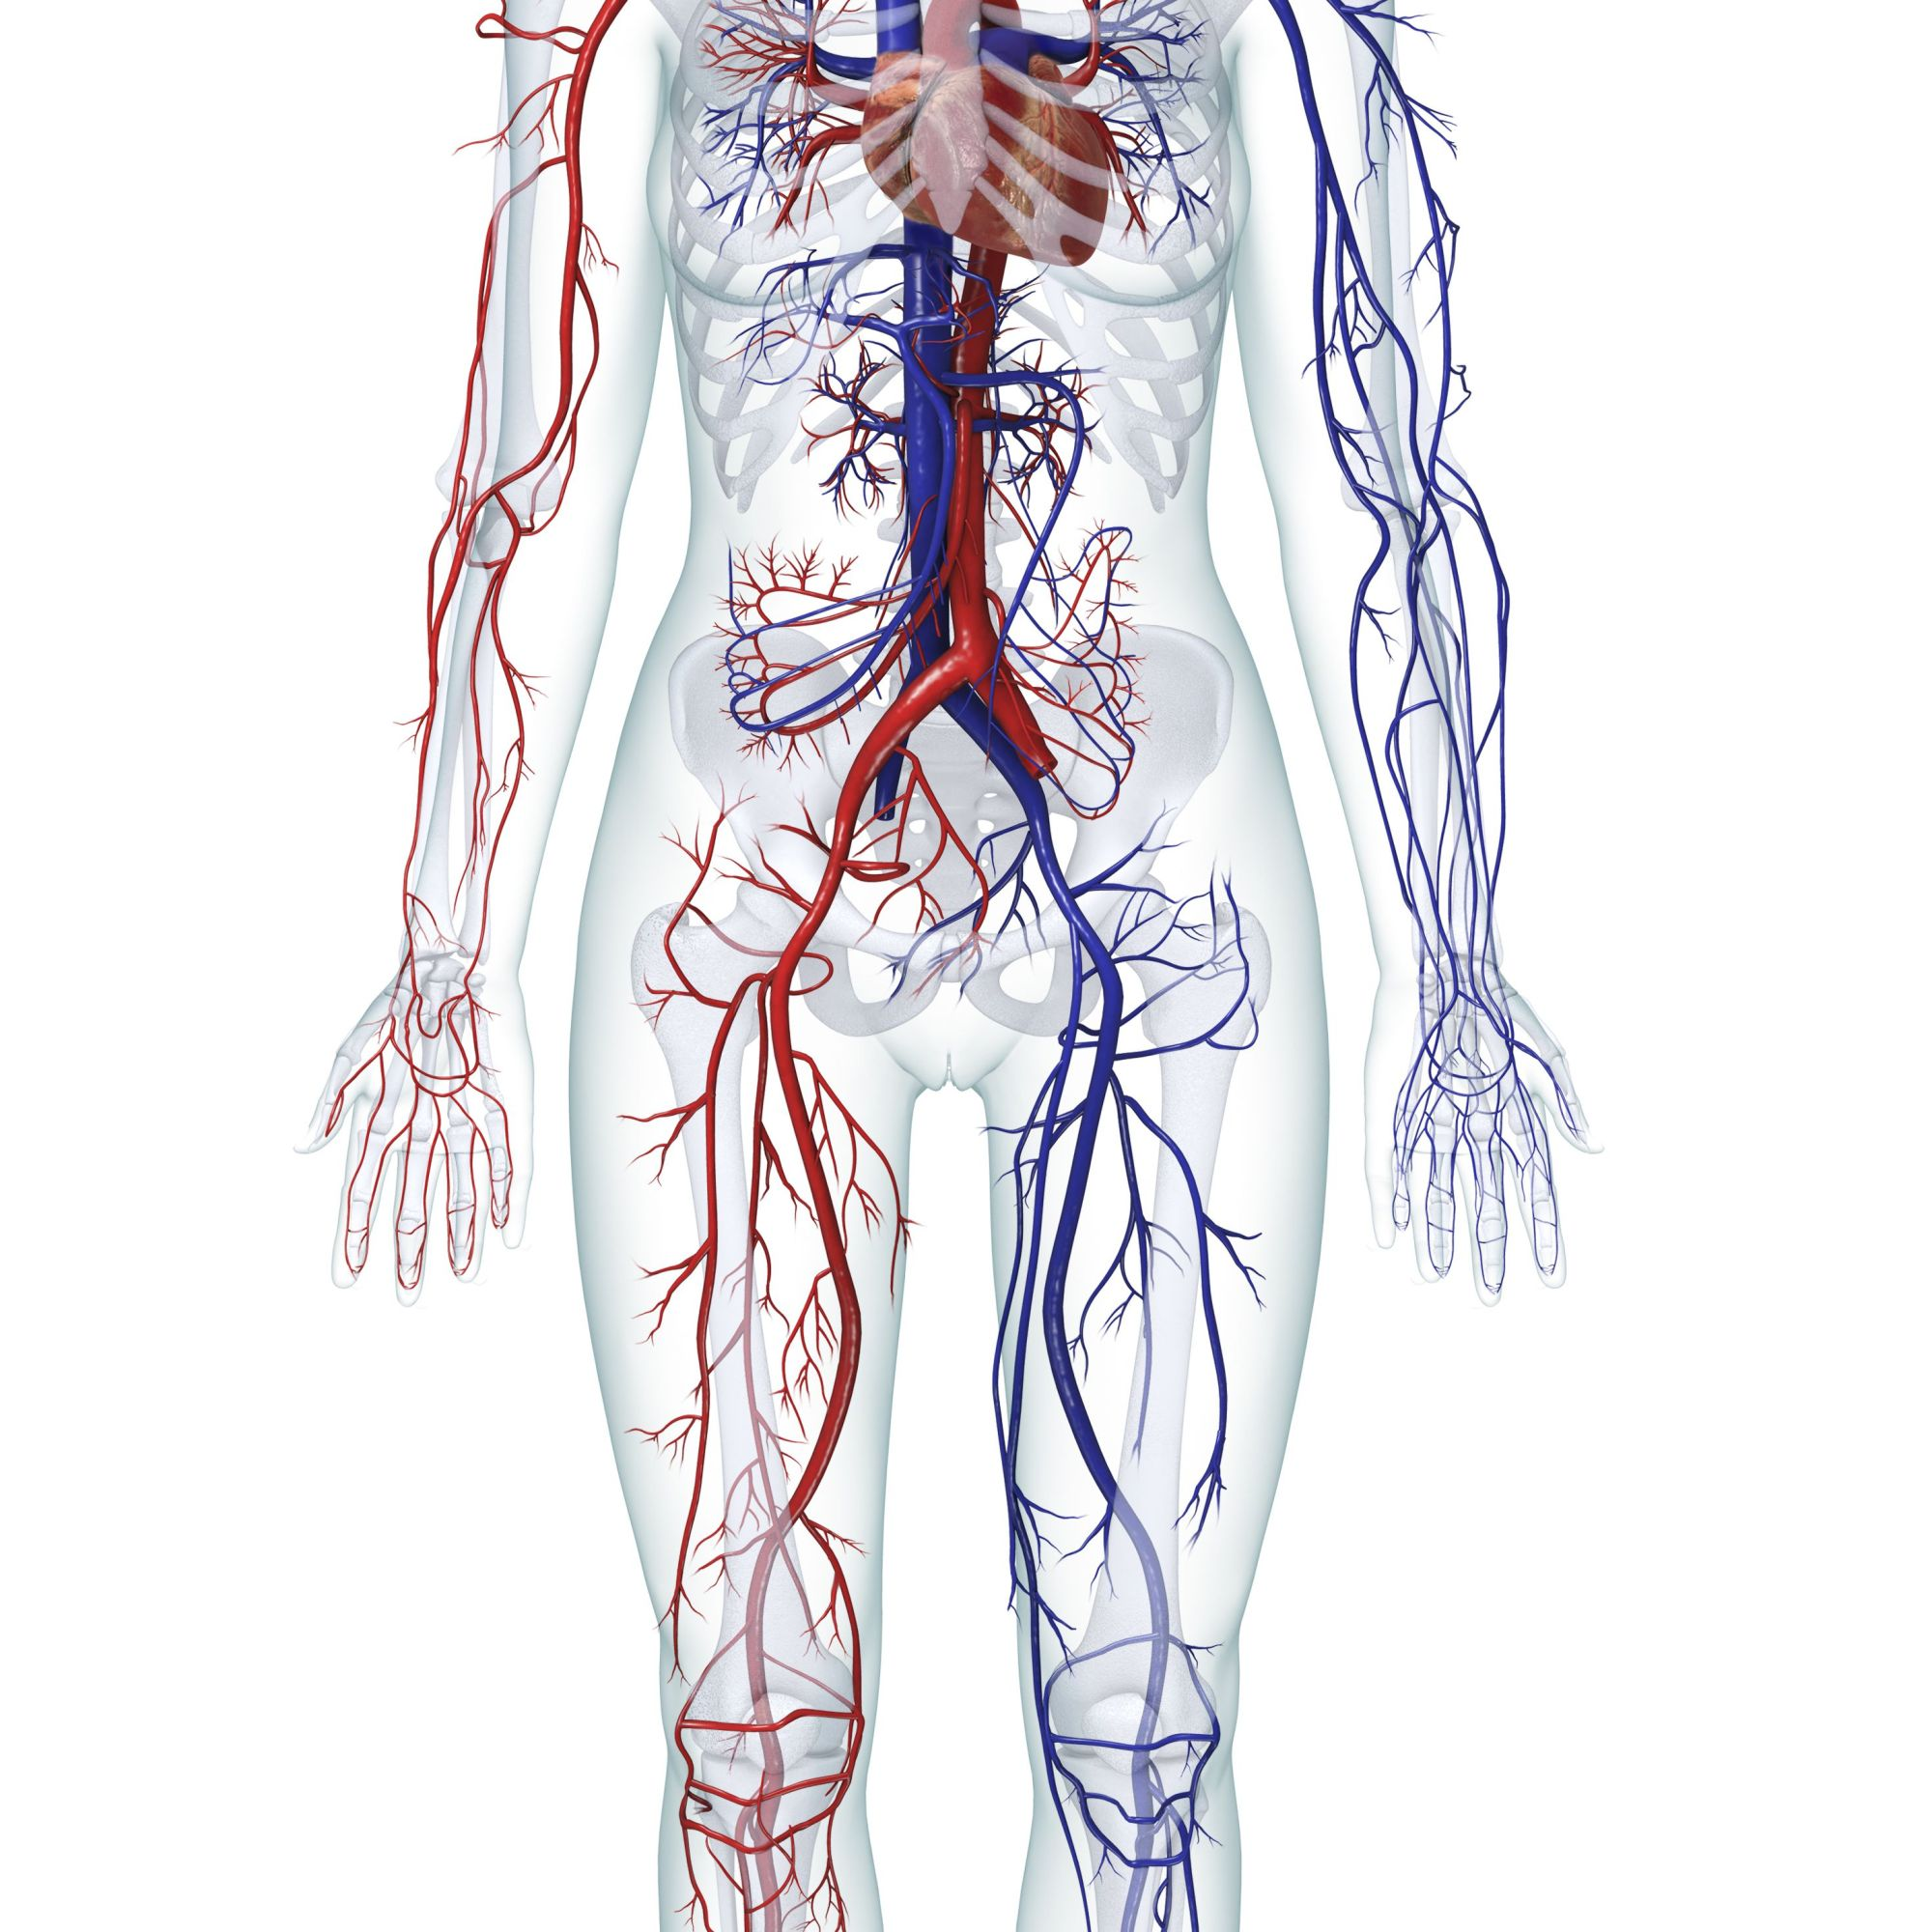 hight resolution of digital illustration of the human cardiovascular system female